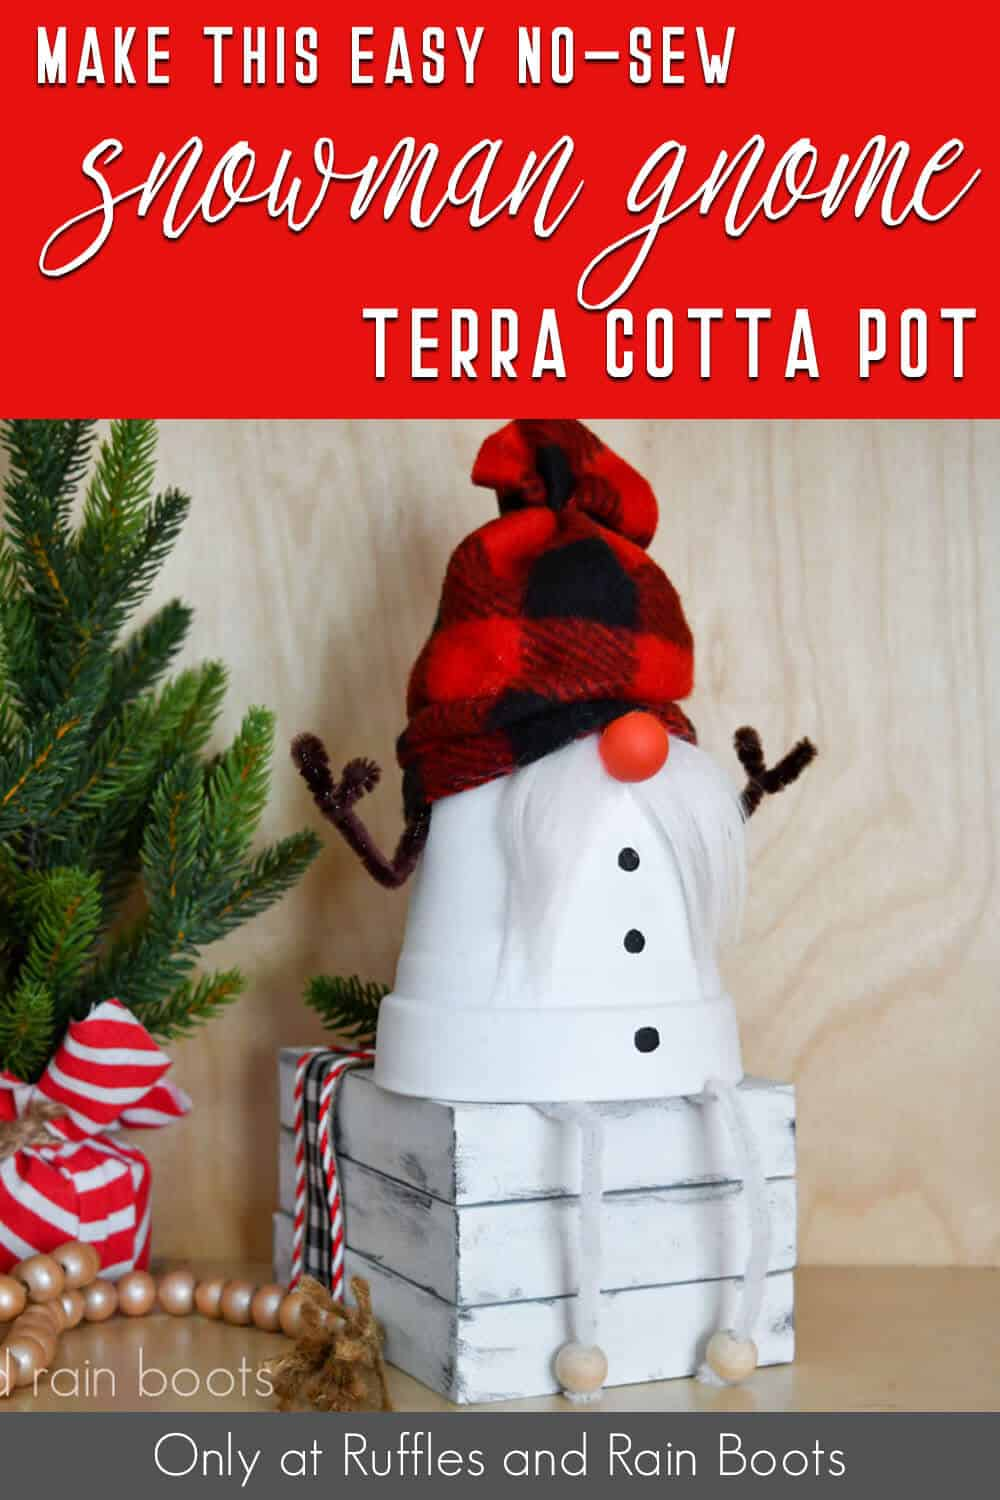 clay pot gnome snowman with text which reads make this easy no-sew snowman gnome terra cotta pot